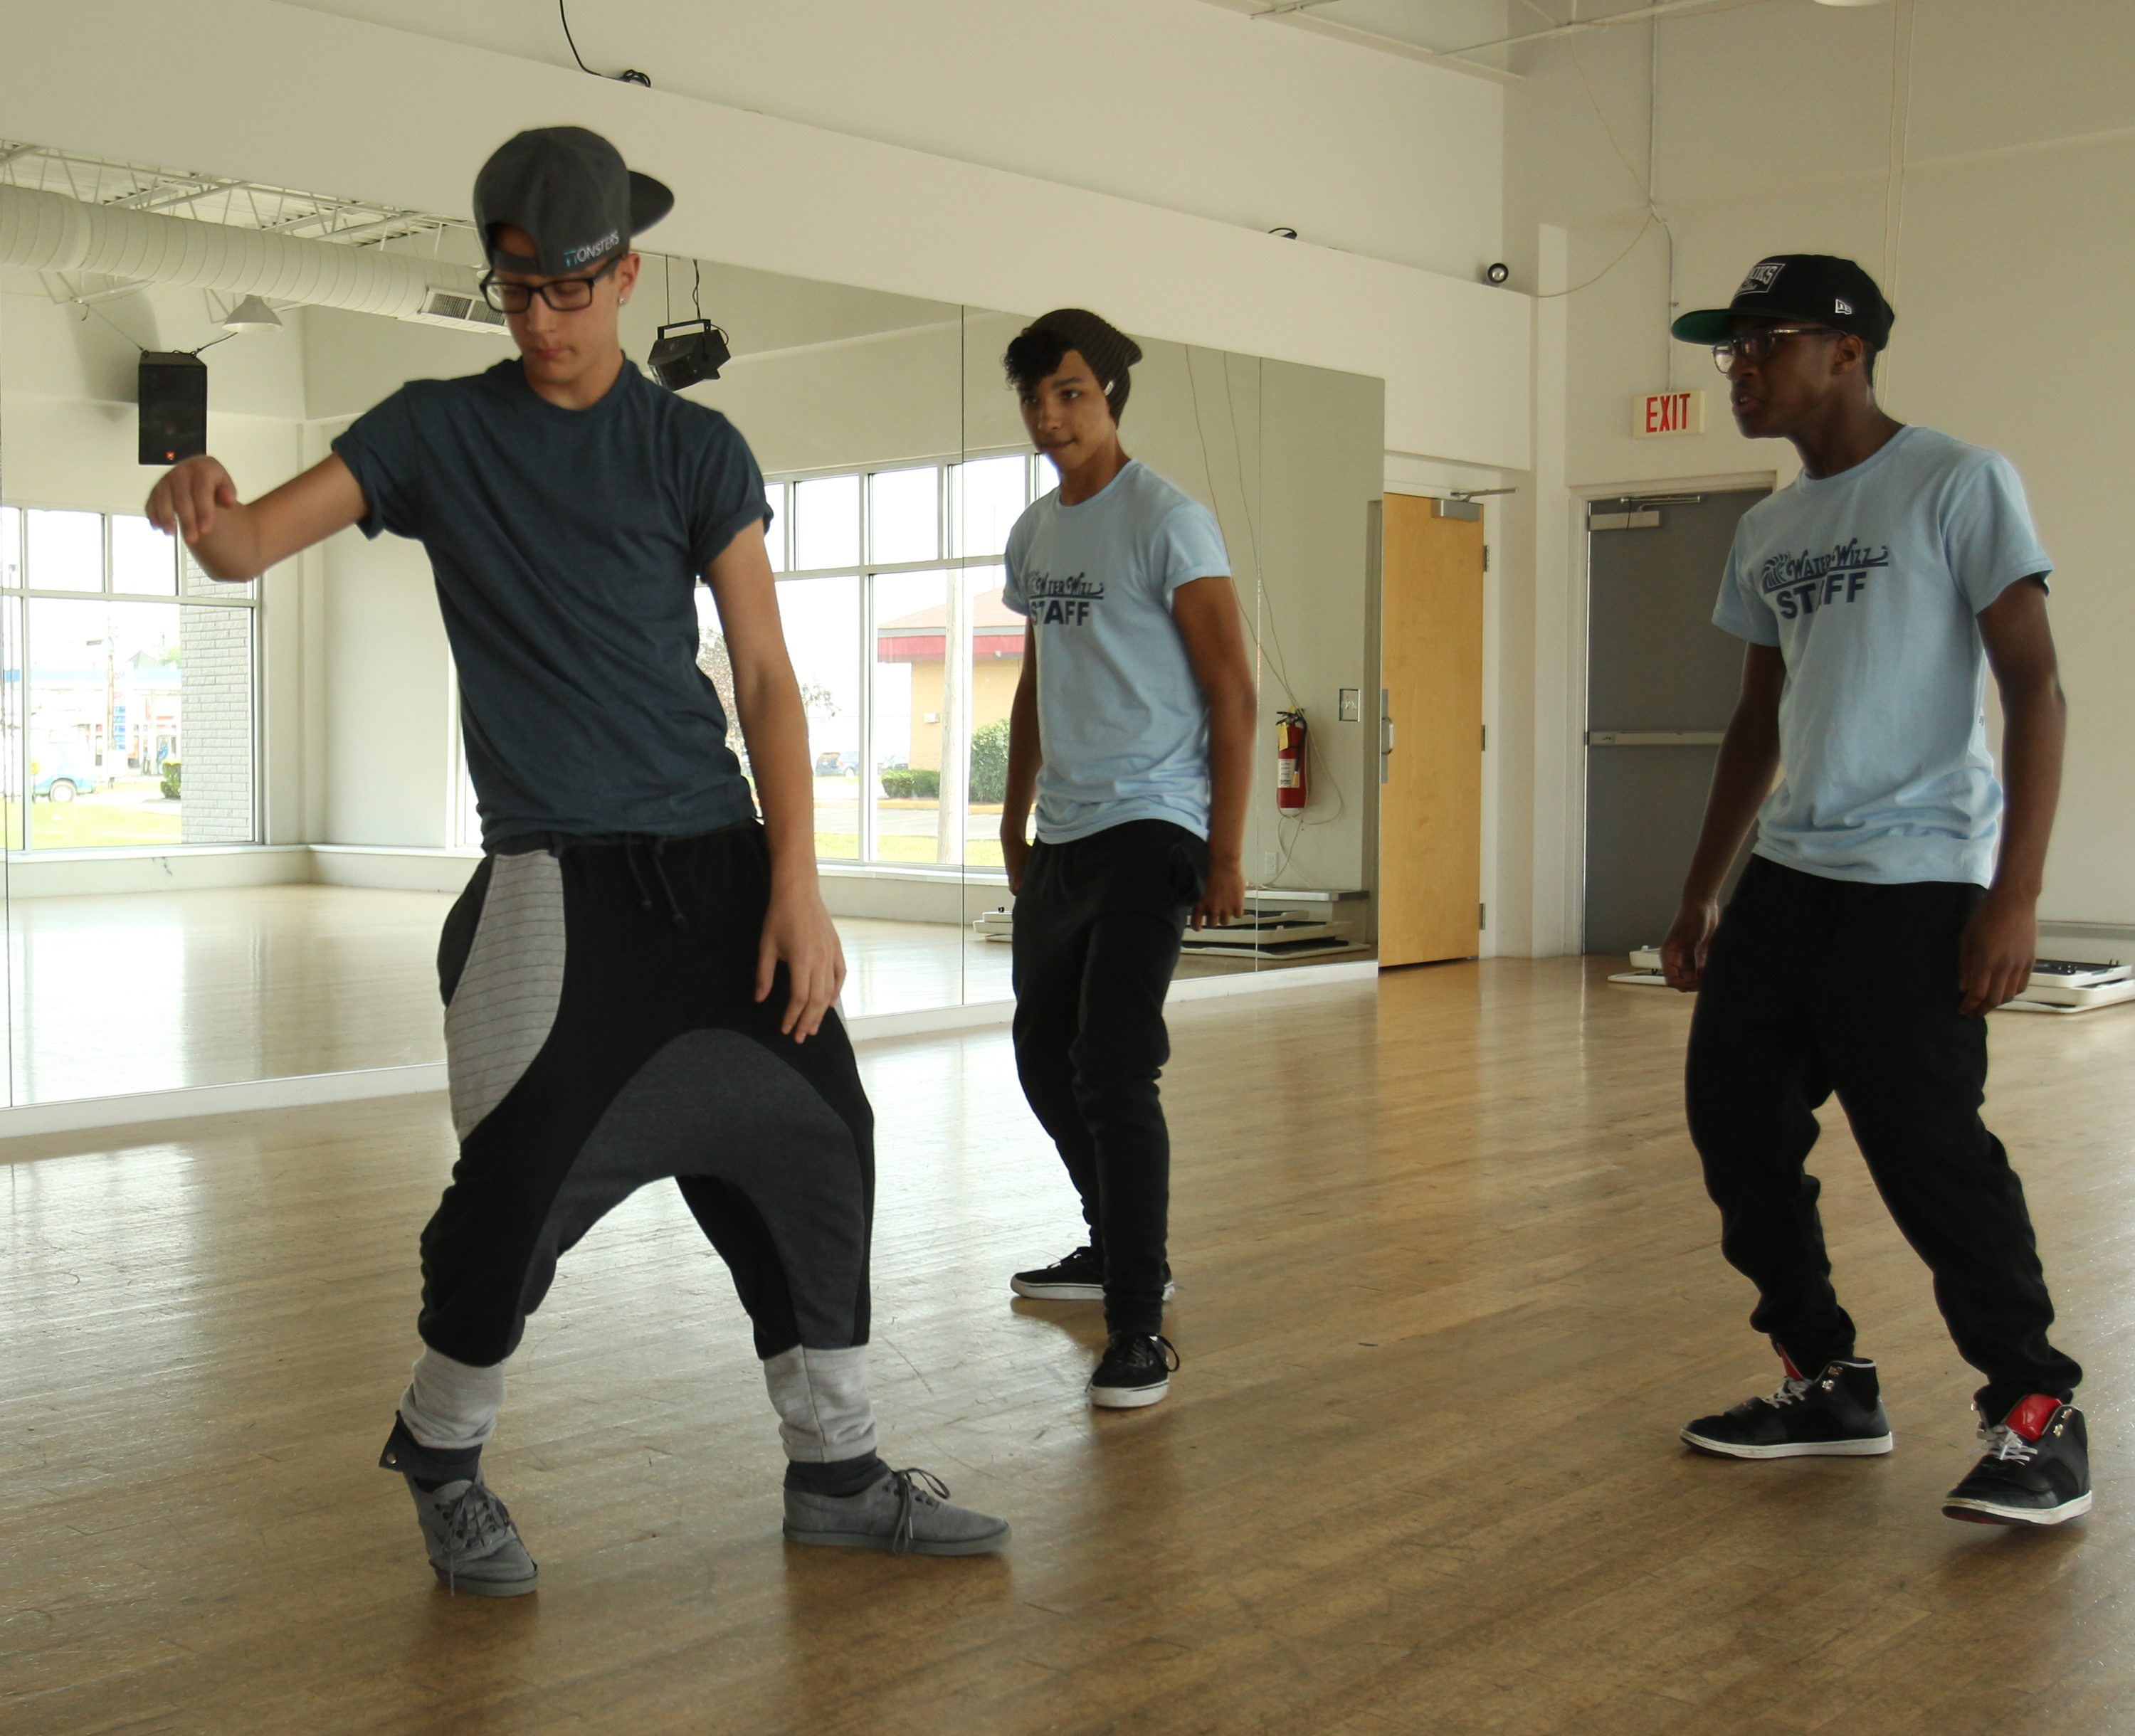 At top, a collection of moves by Tiley Strowzewski. Above, from left, Zach Weaver, Strowzewski and Xavier Drayton at a practice session at Future Dance Center.